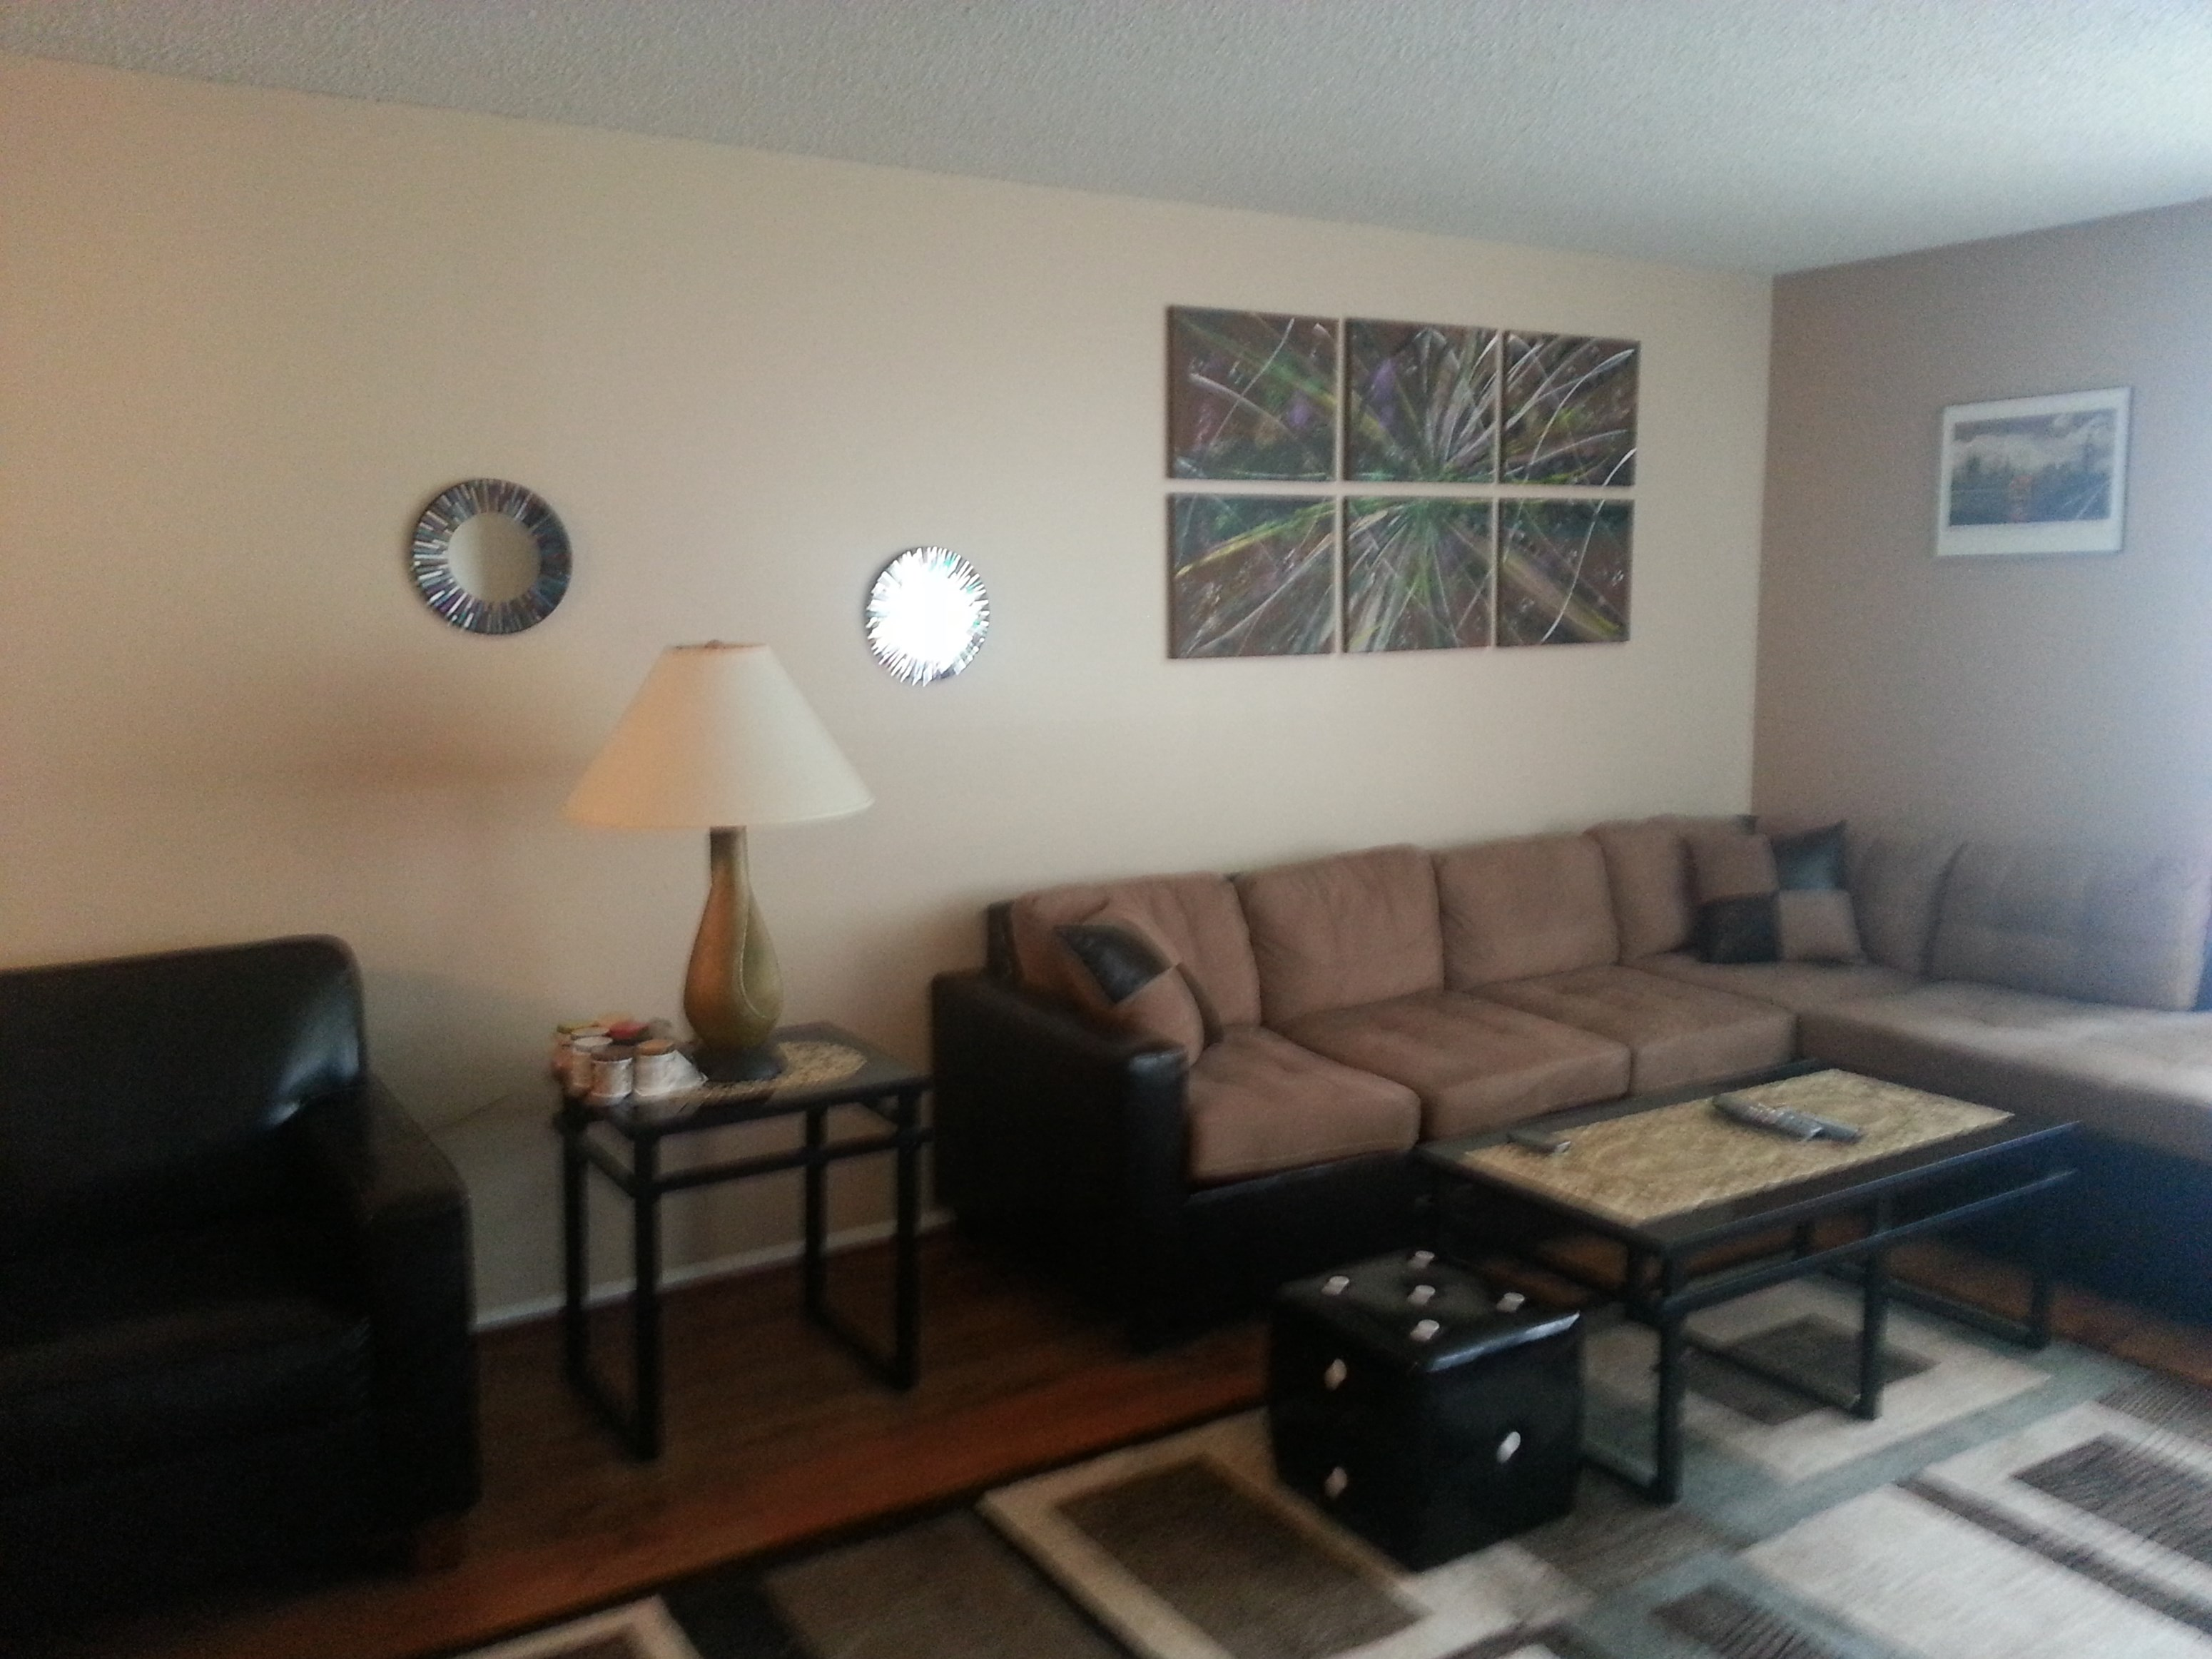 Rooms For Rent Arlington Heights Il Apartments House Commercial